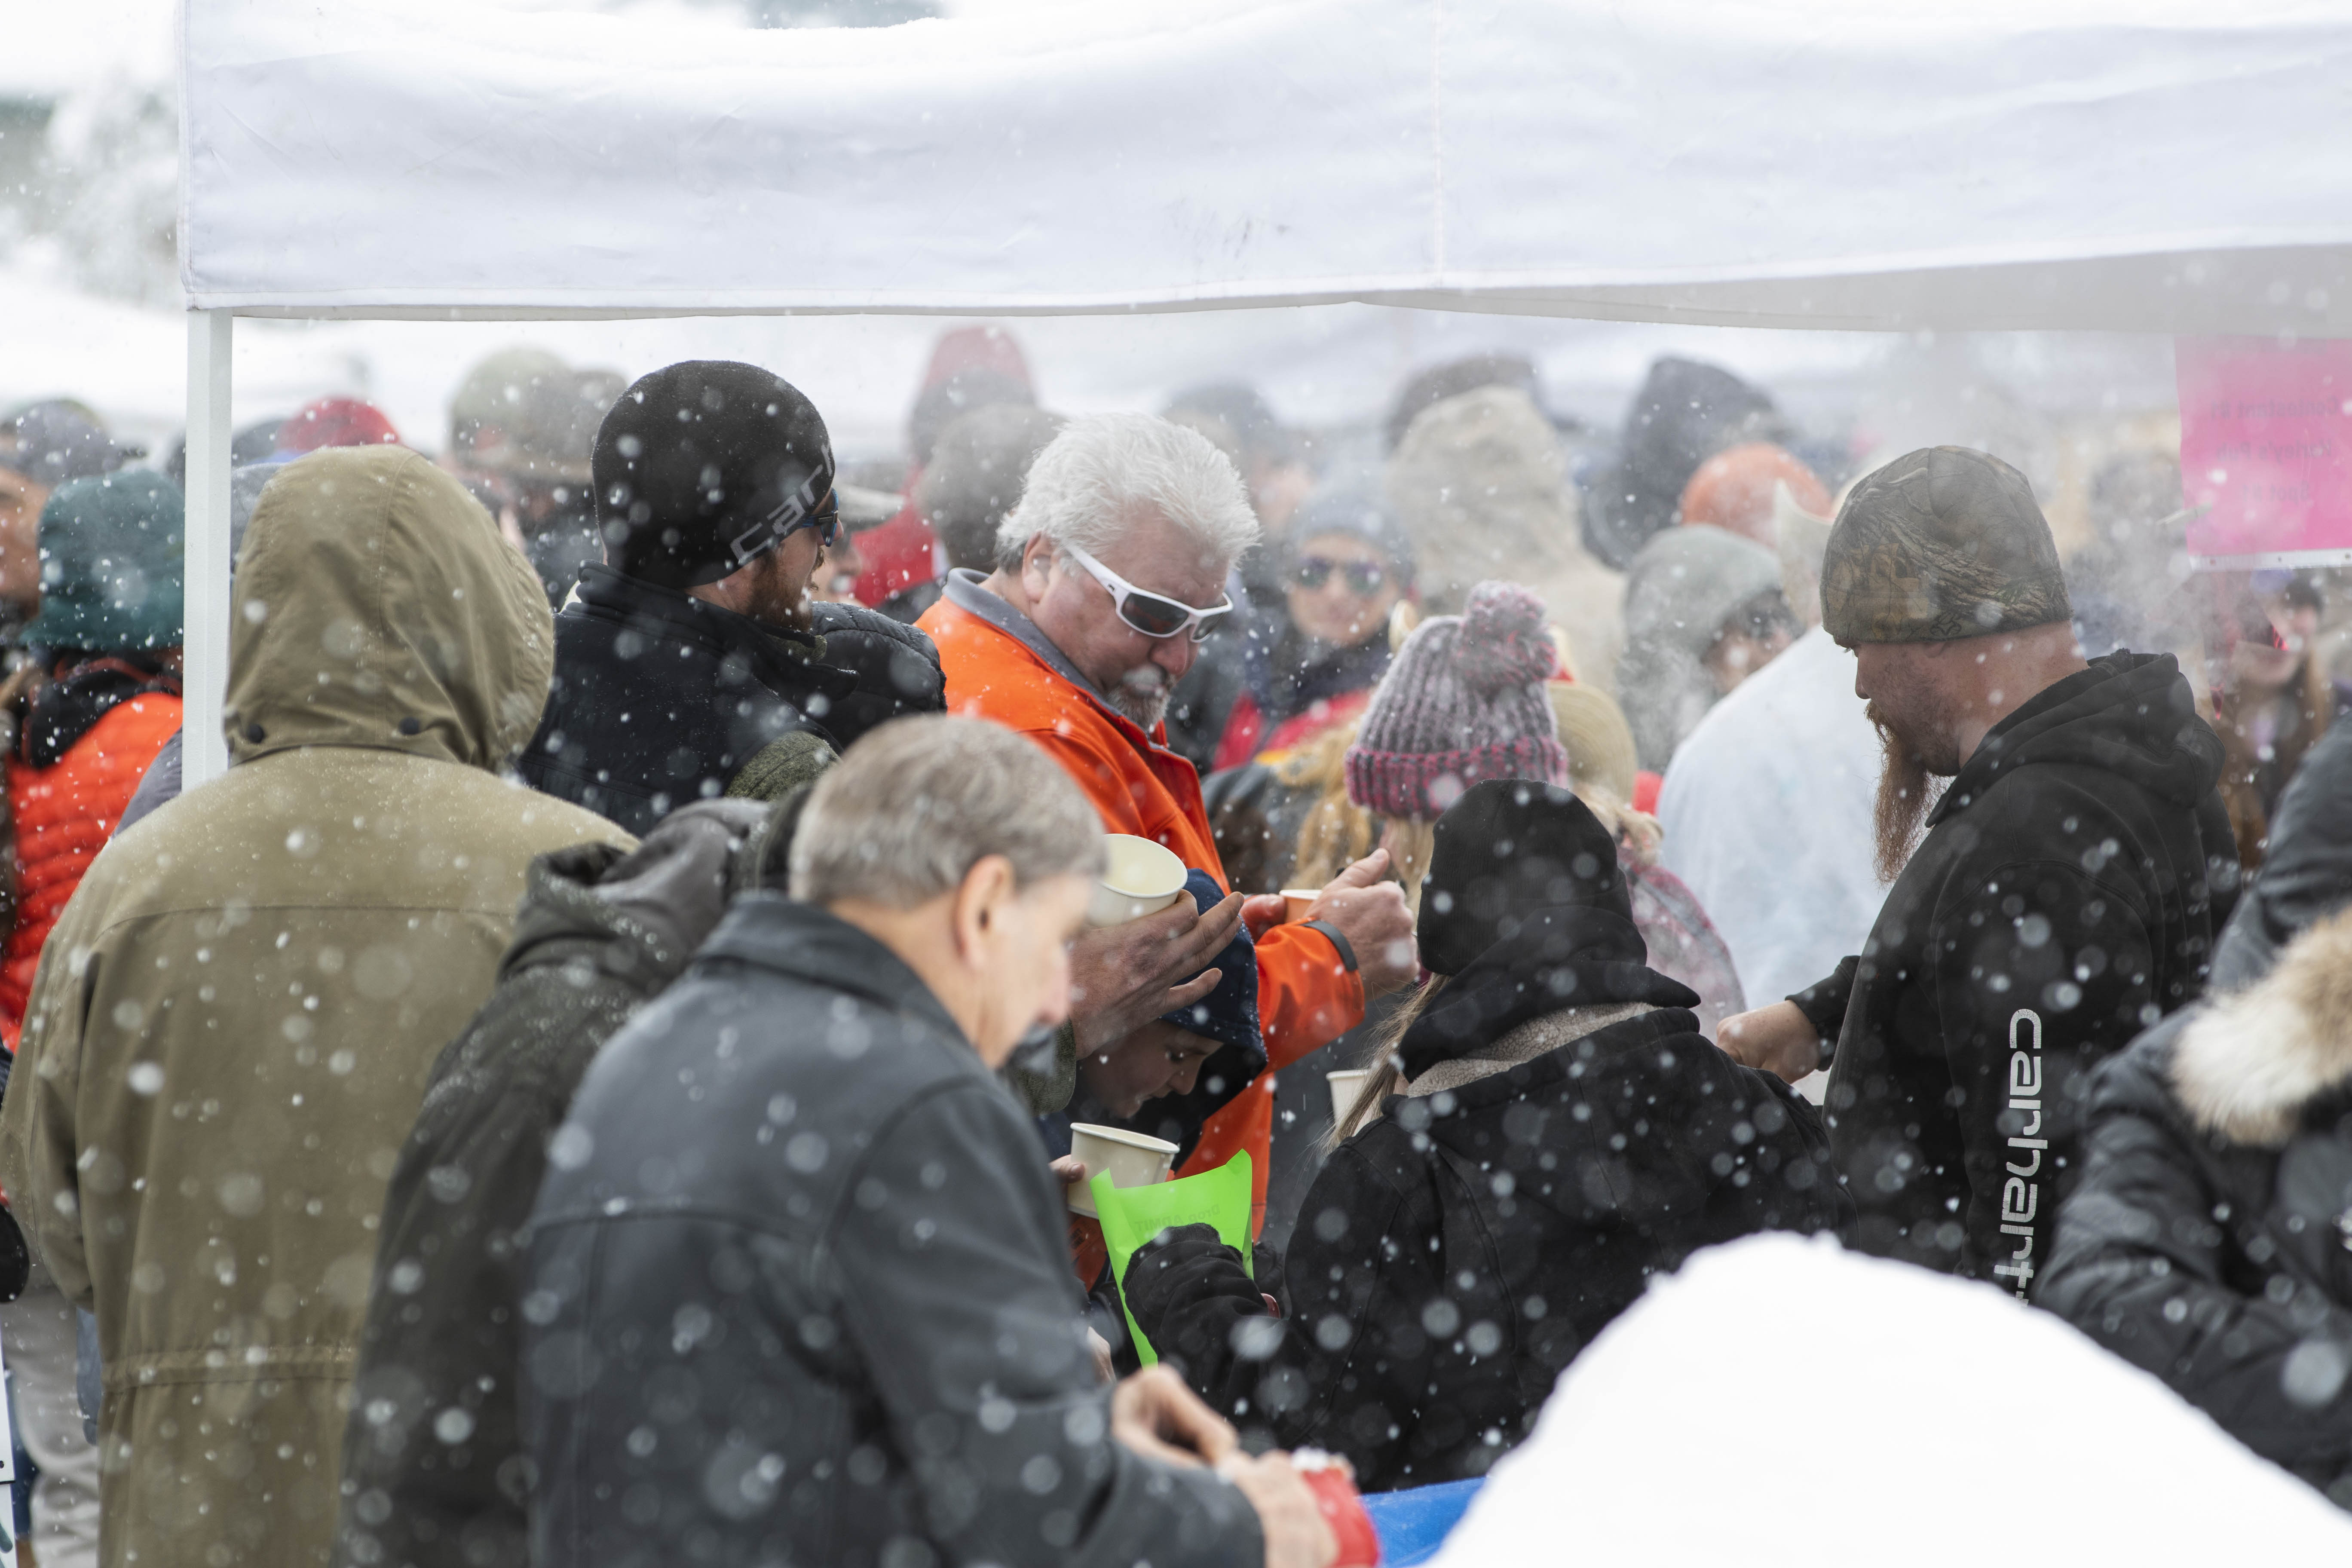 The 33rd Idaho City Chili Cook-Off took place Saturday in Idaho City. Teams from around the state competed to see who could make some of Idaho's best chili. A light snow fell to add to the fun in the downtown of the historical city. (Photos by Axel Quartarone)